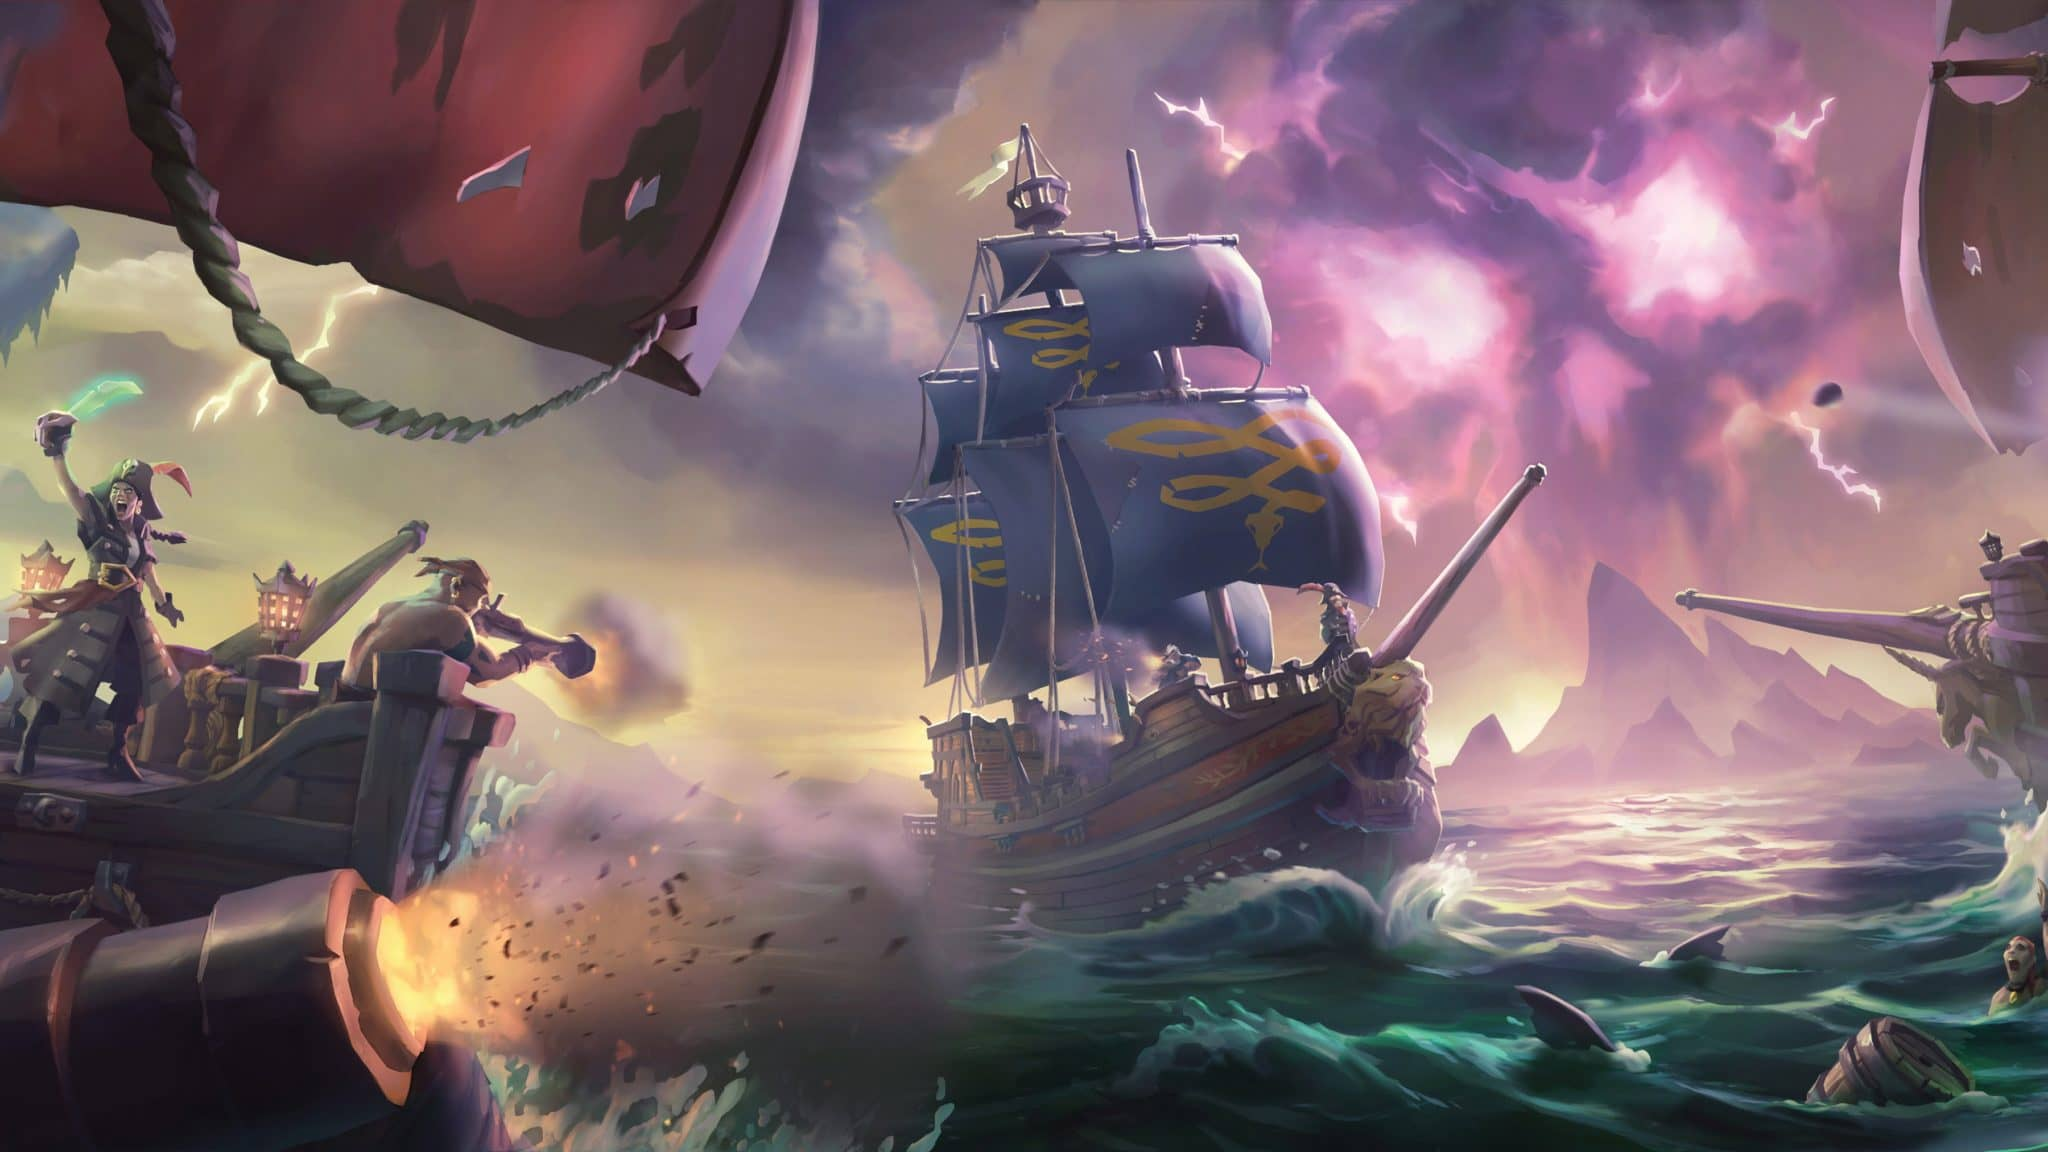 sea of thieves video game desktop wallpaper 62599 64572 hd wallpapers min - اشتراک آنلاین دائم   Sea of Thieves